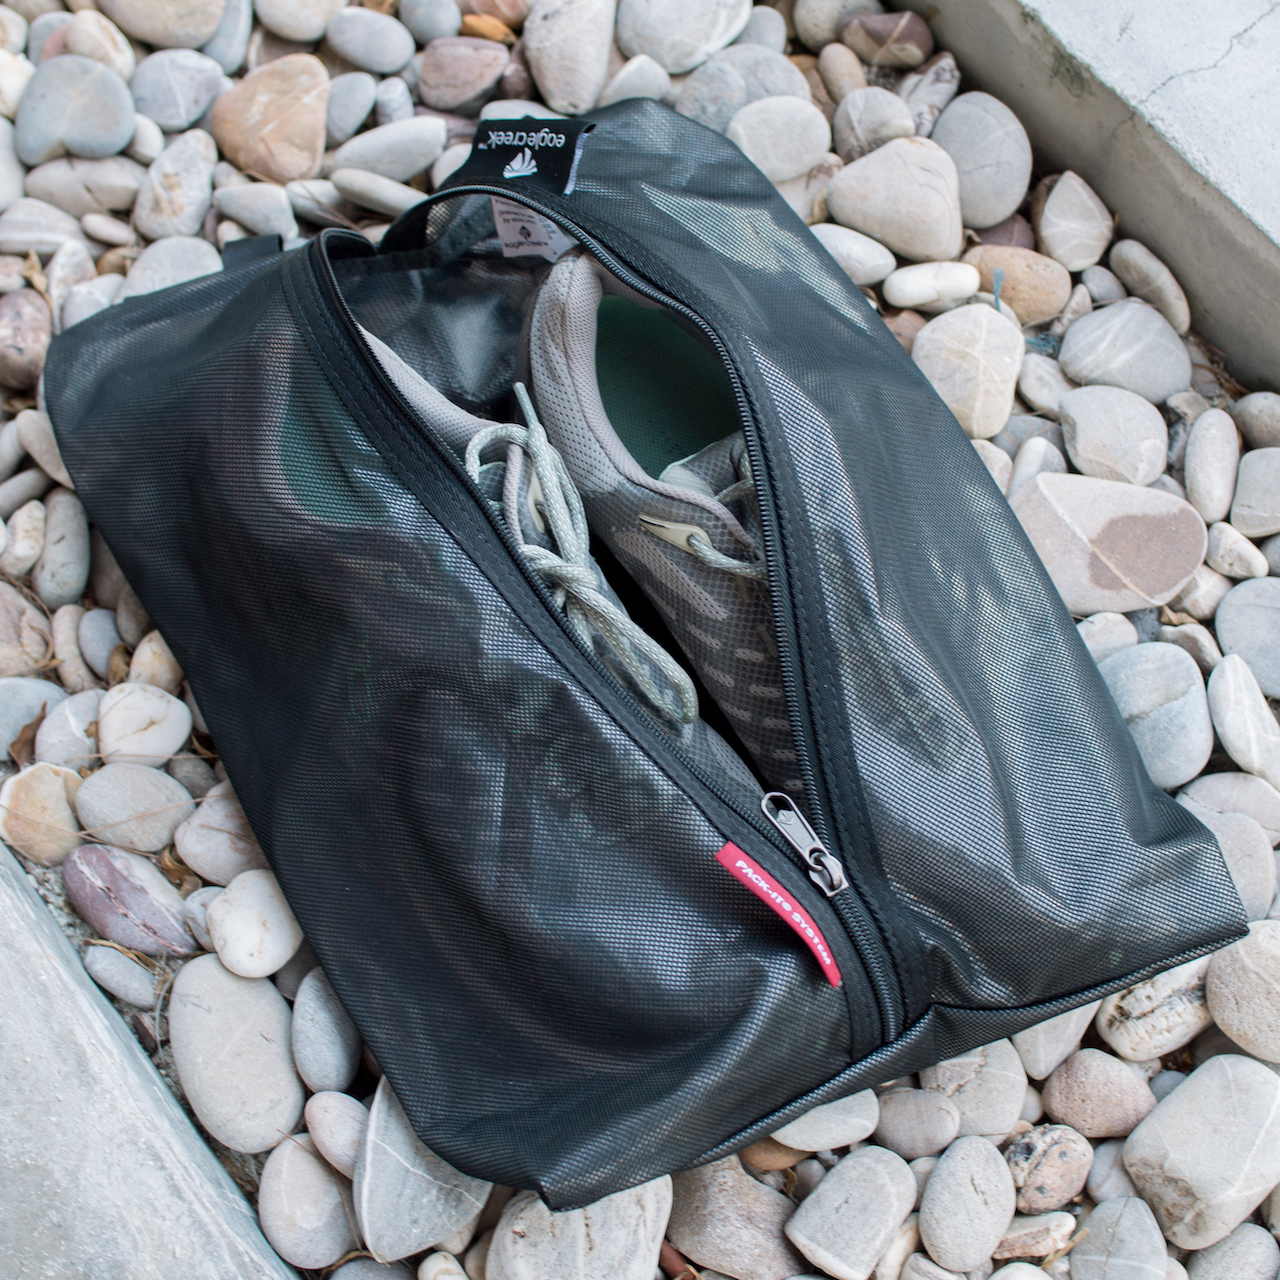 Shoe storage bag | Keep your baggage clean and organized